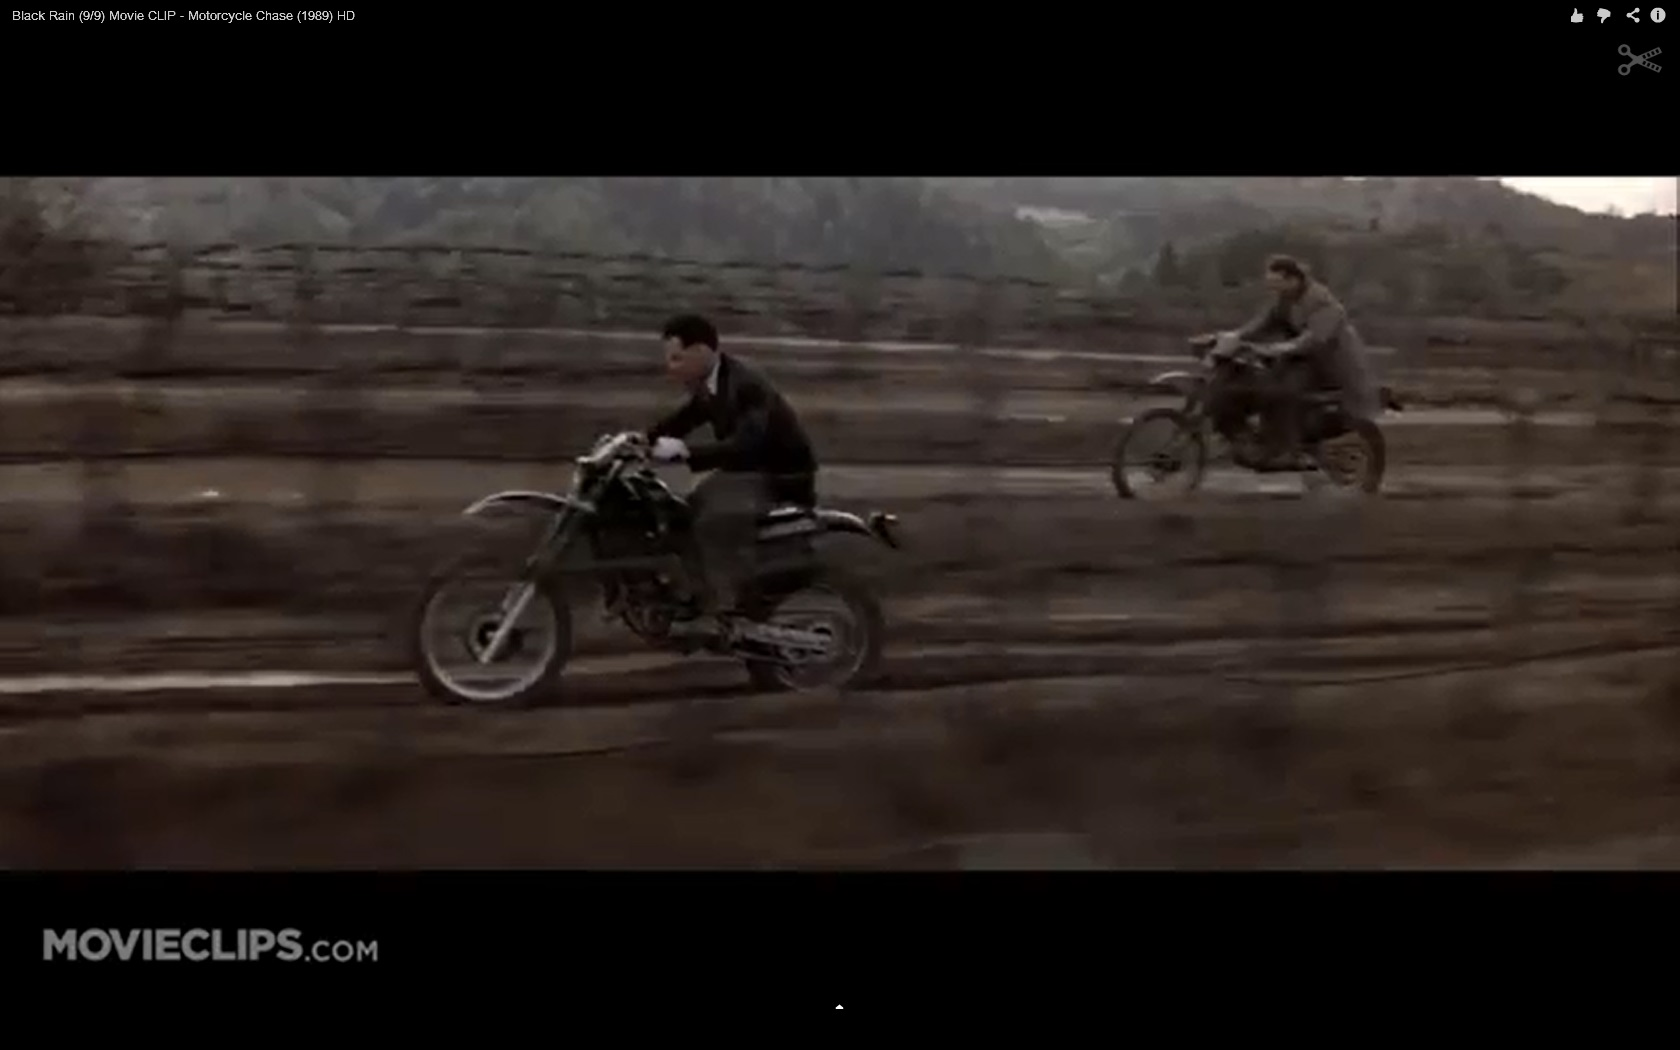 Top 10 things movies get wrong about motorcycles